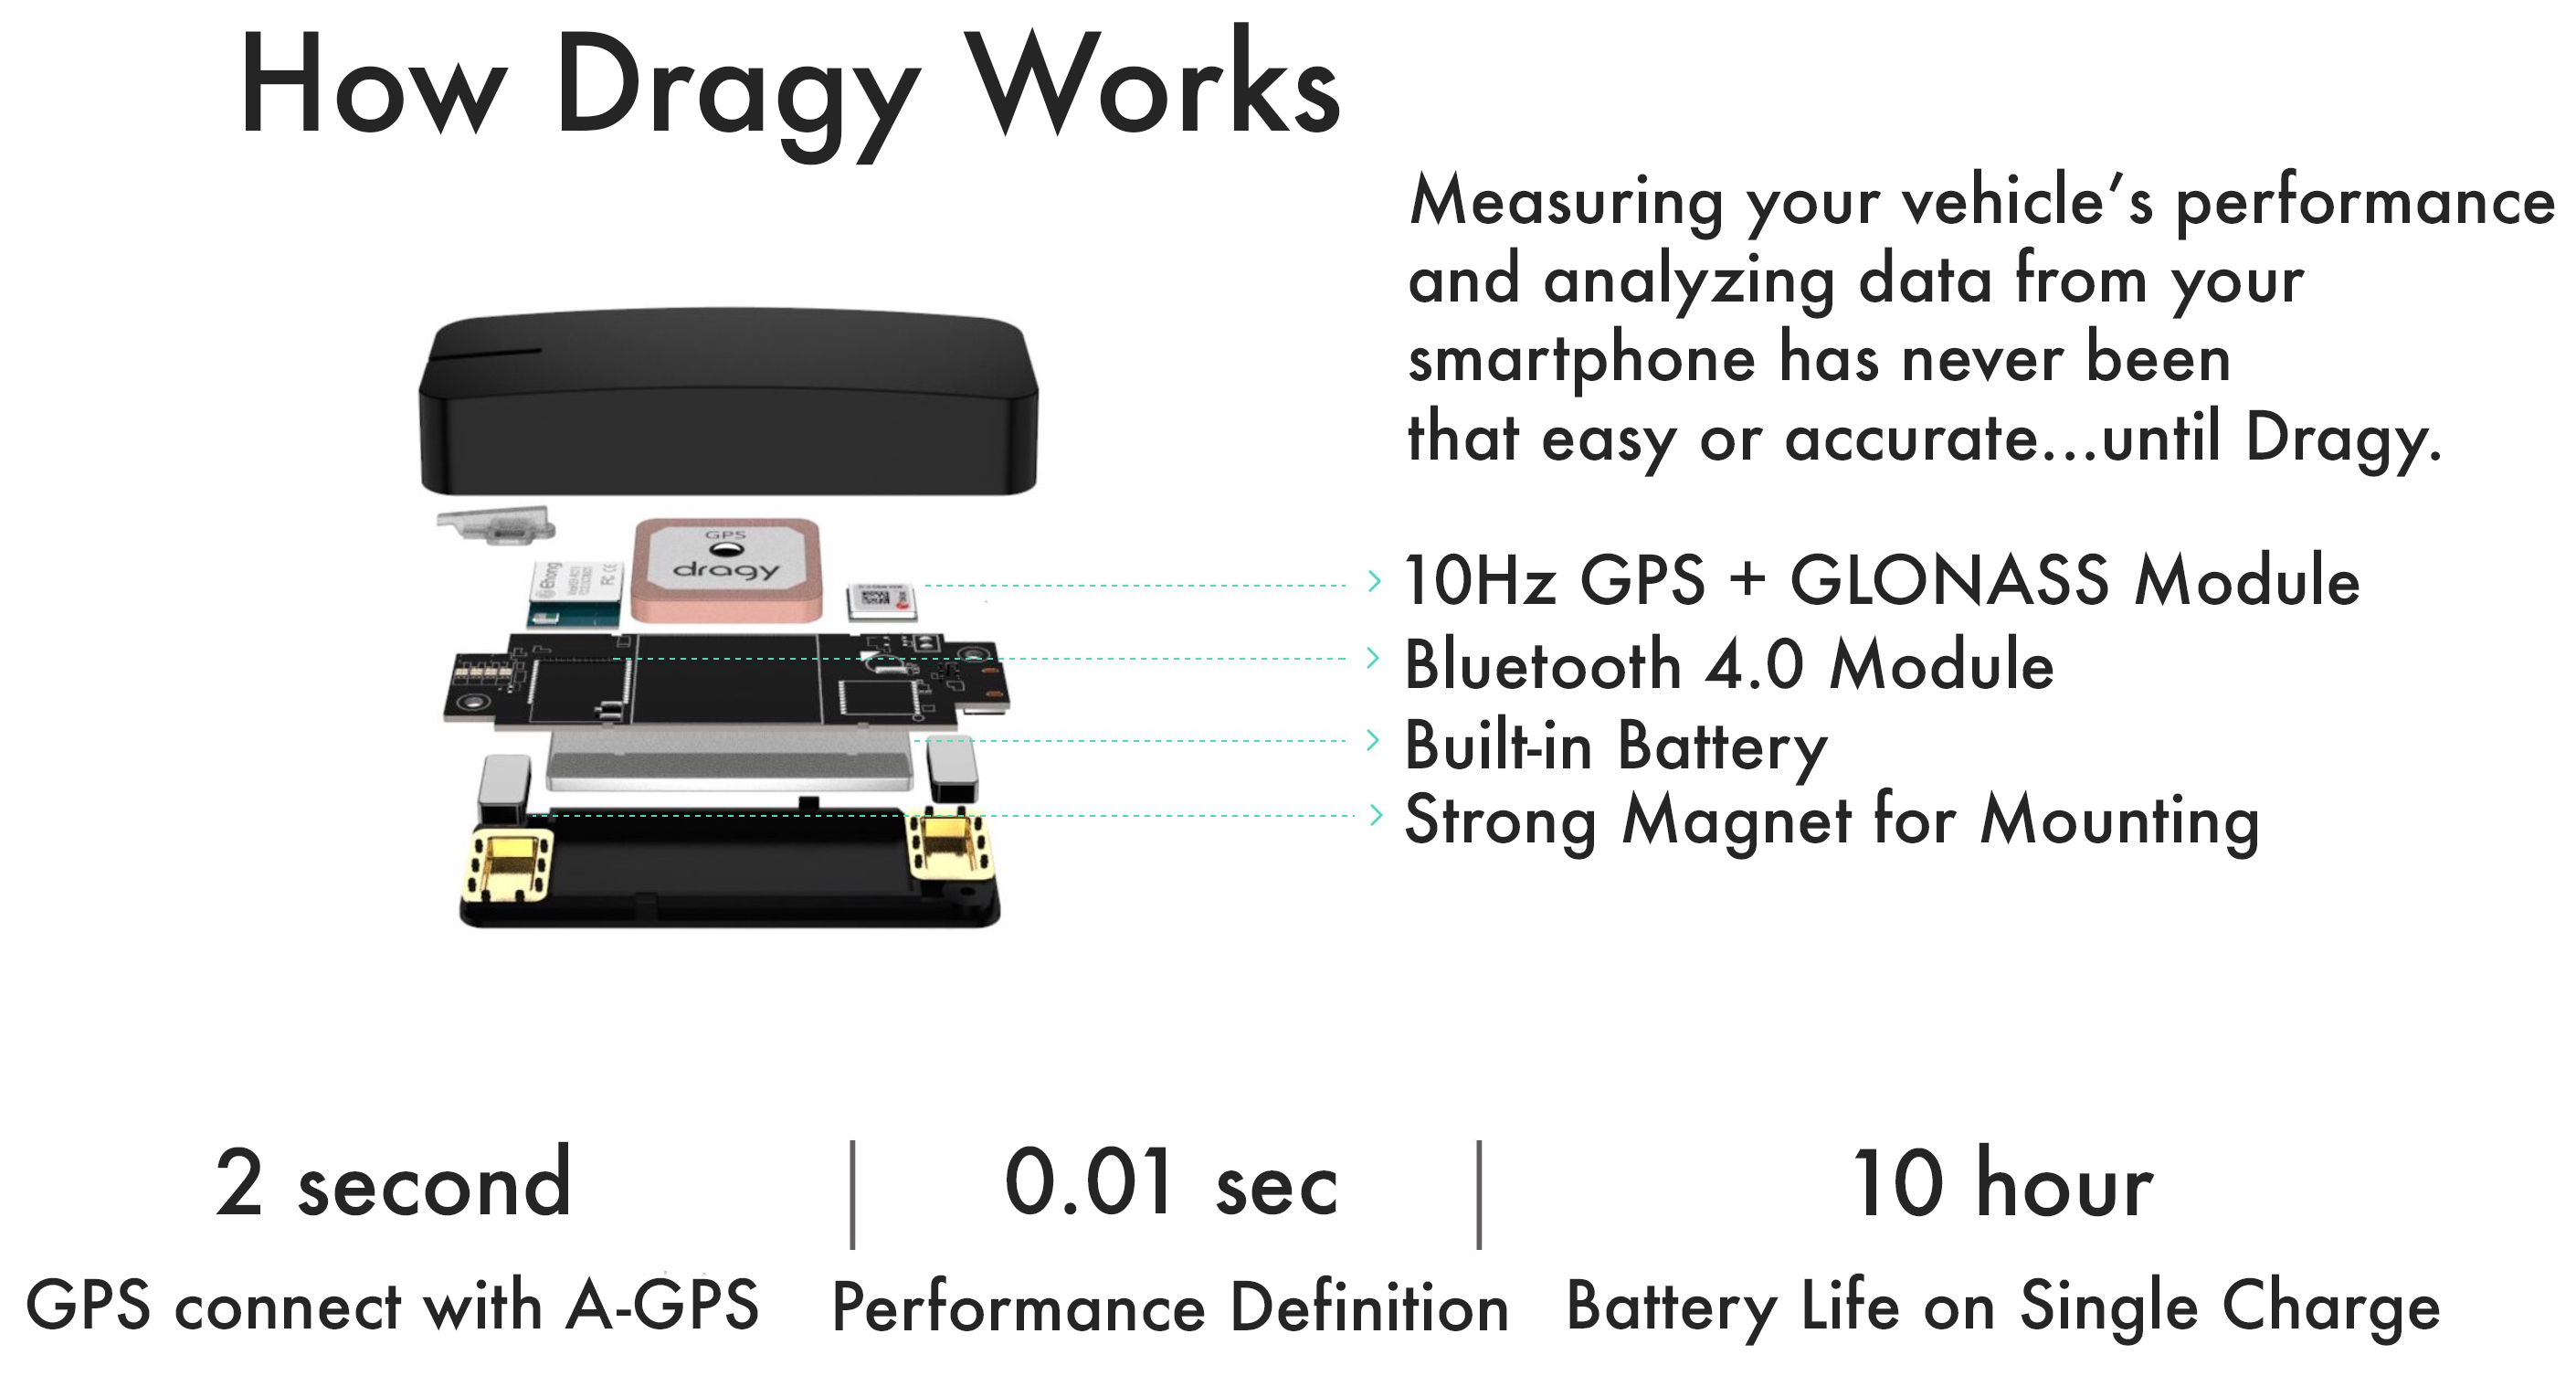 Dragy GPS Performance Meter Components - How it works